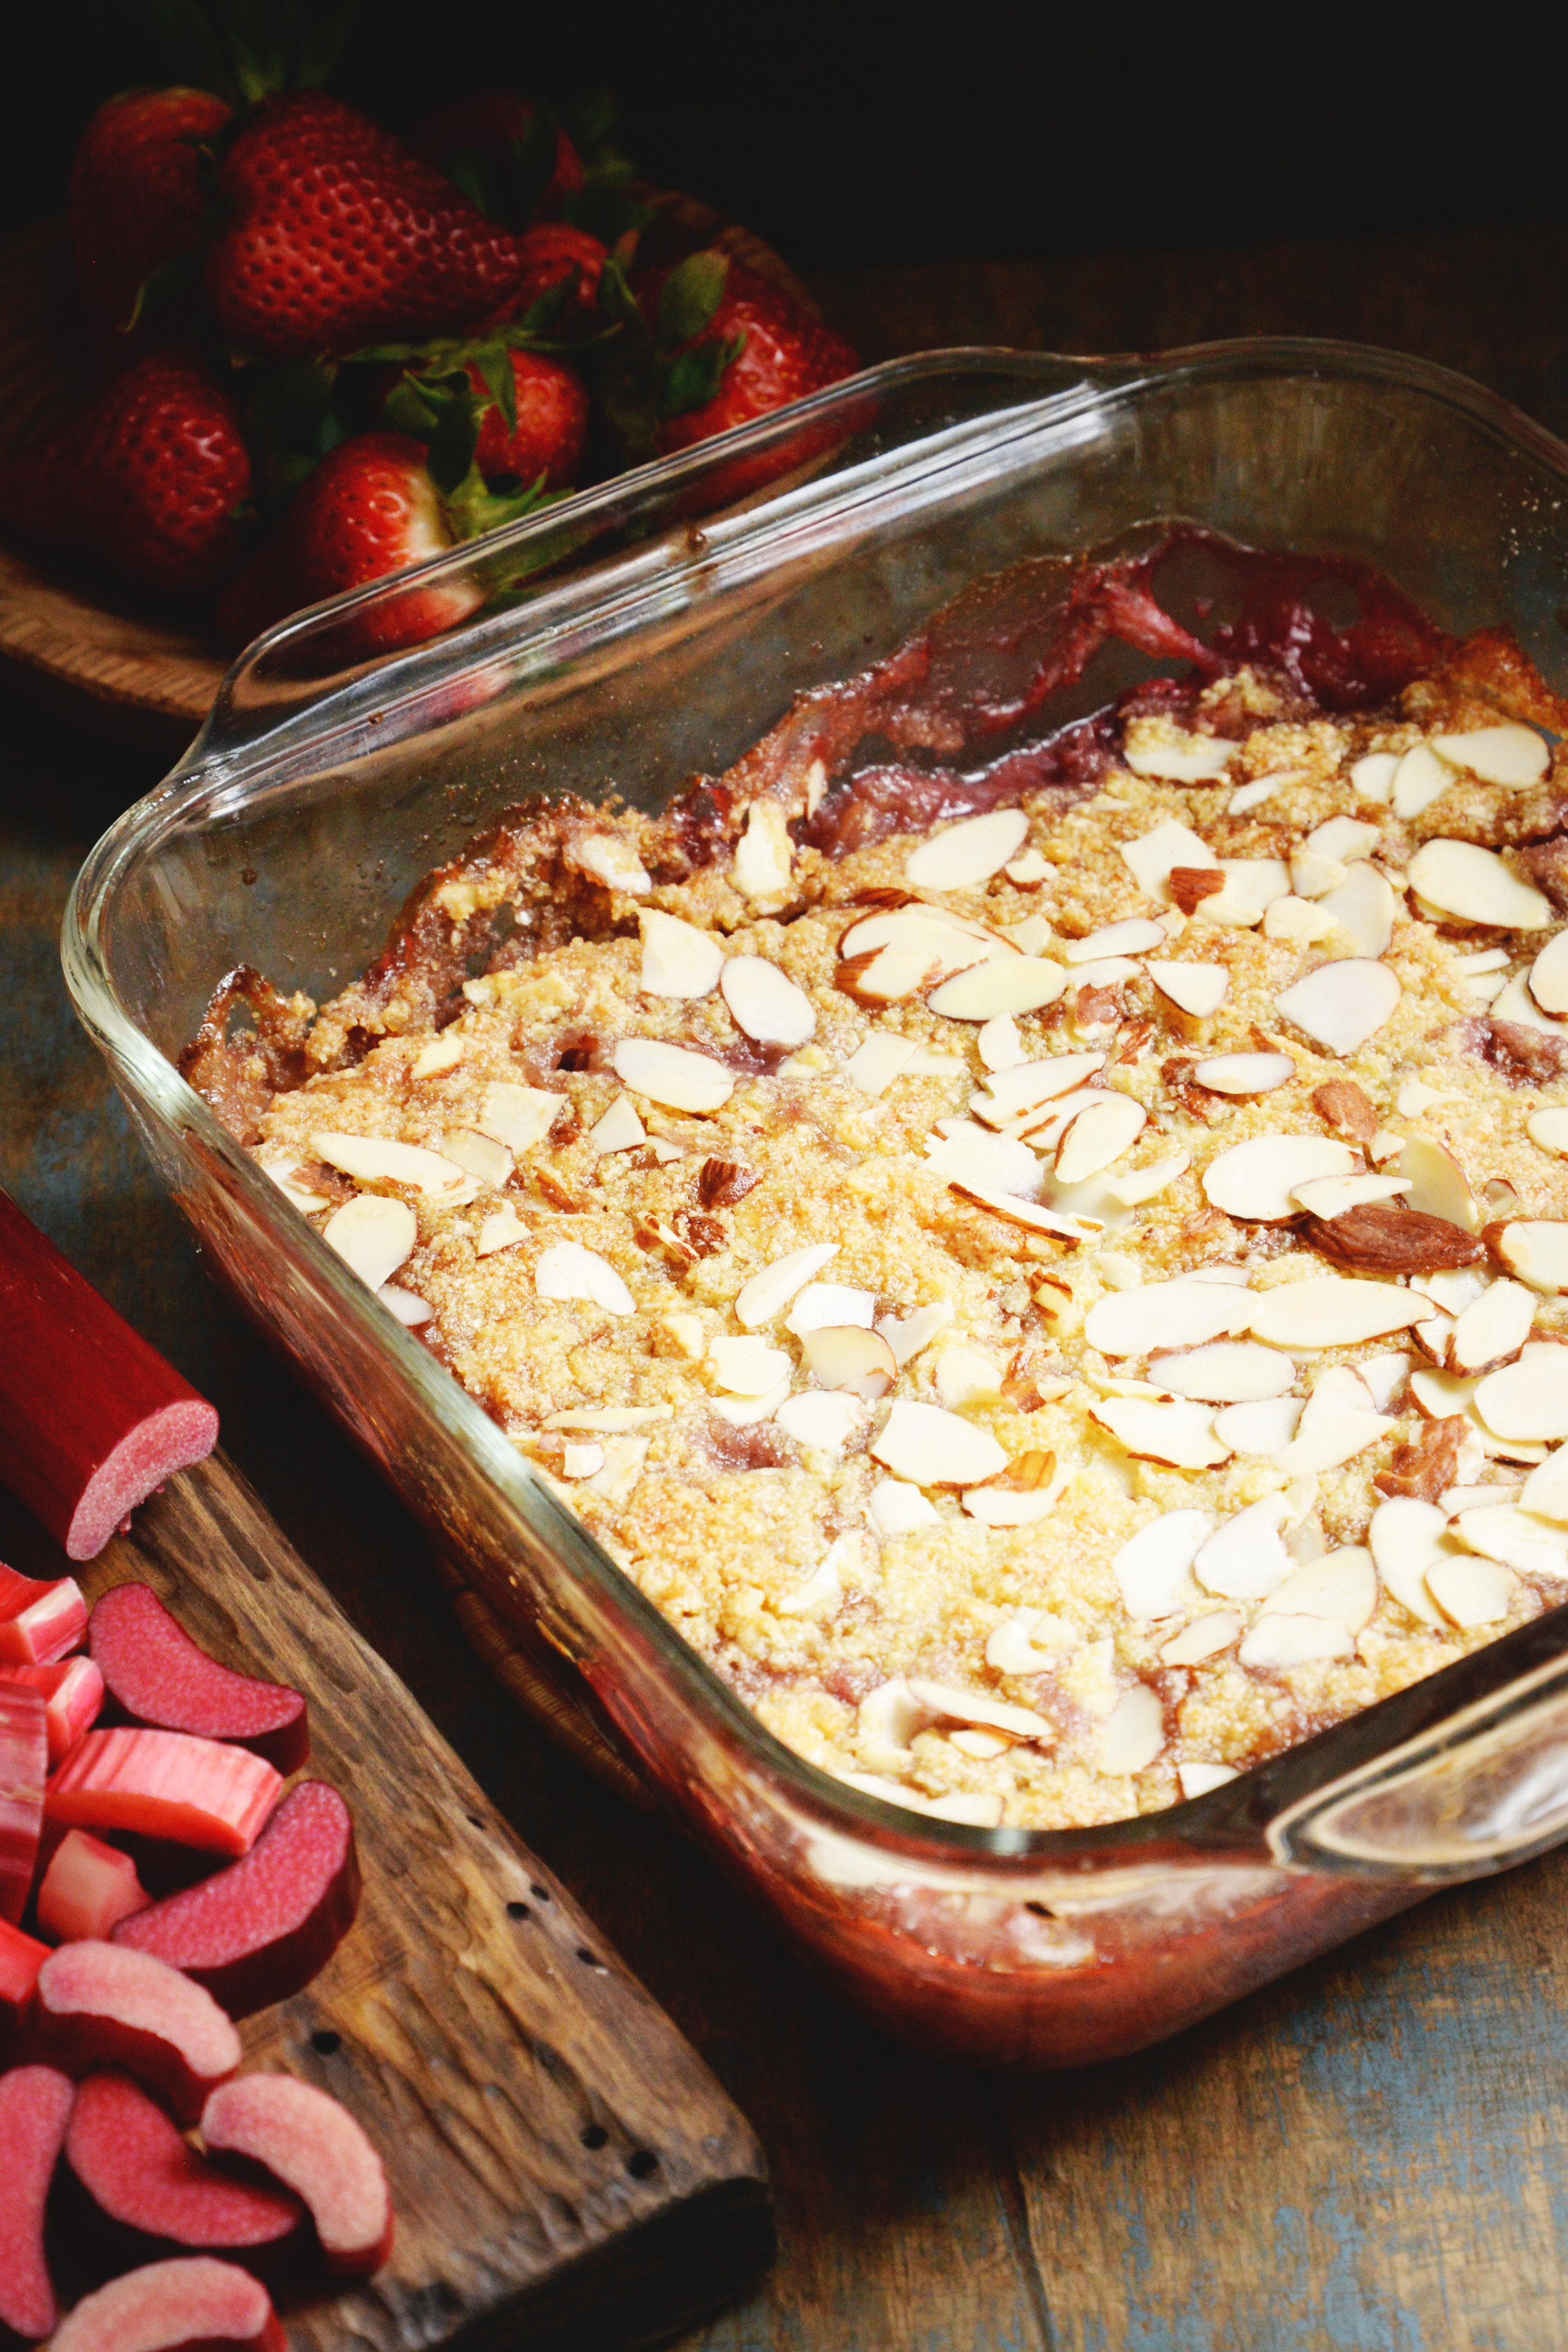 Low-Carb Strawberry Rhubarb Crisp recipe-before serving.